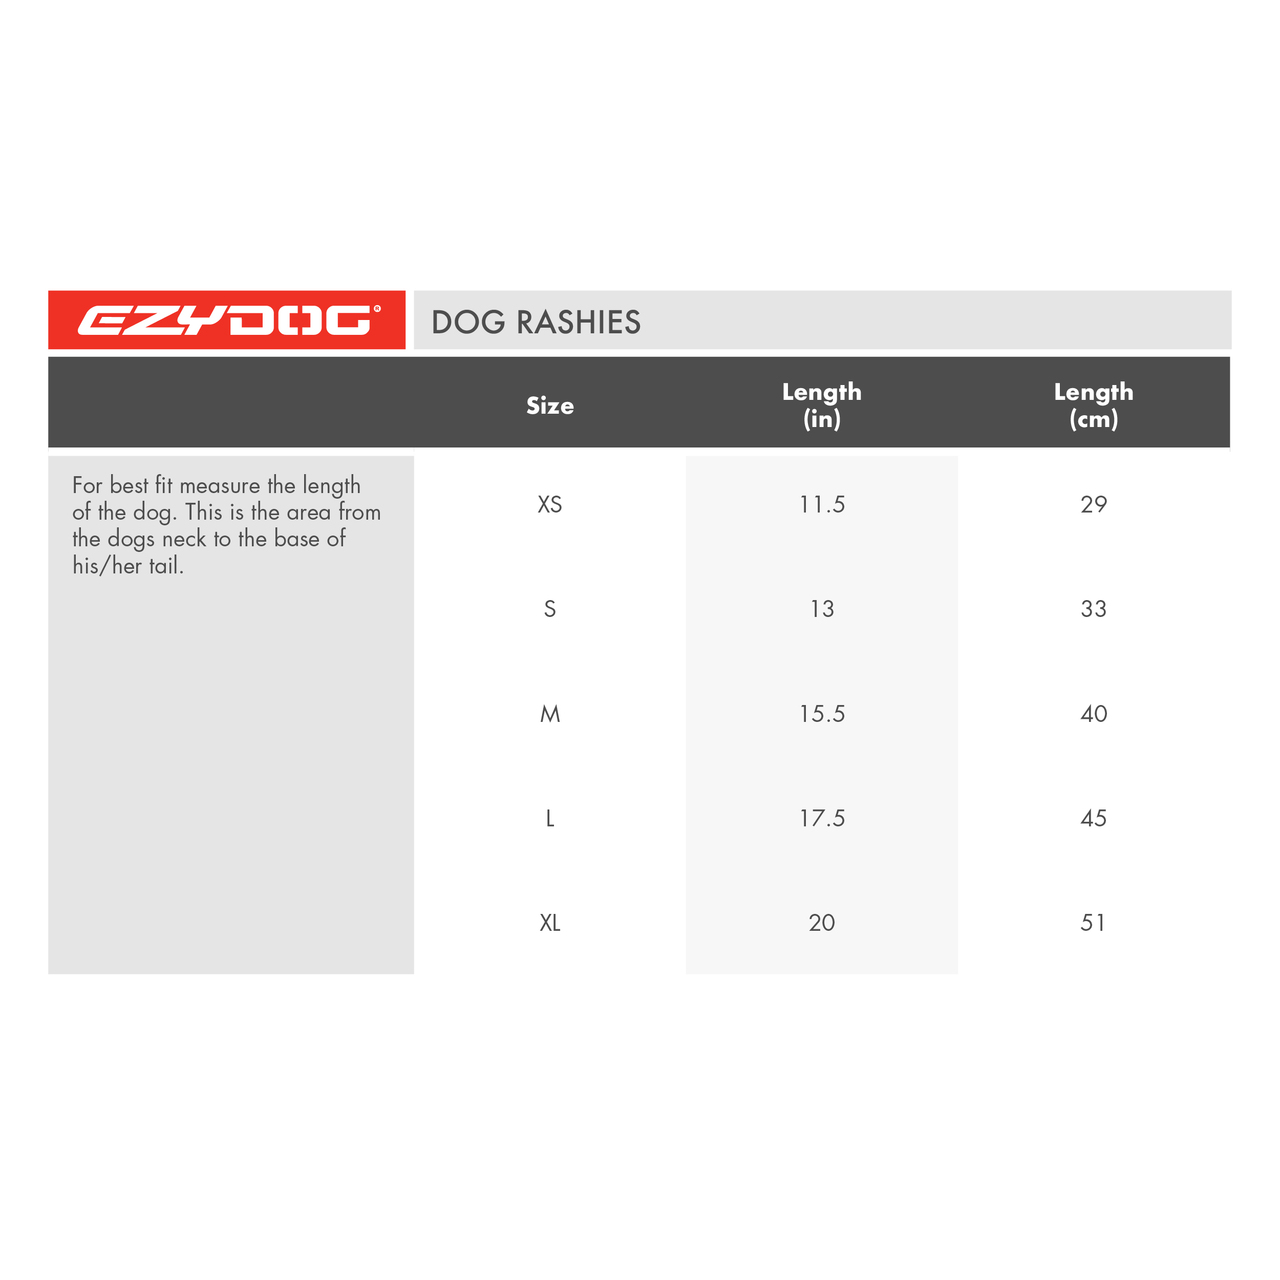 EzyDog Dog Rashie Shirt UV 50+ Sun Protection Size Chart